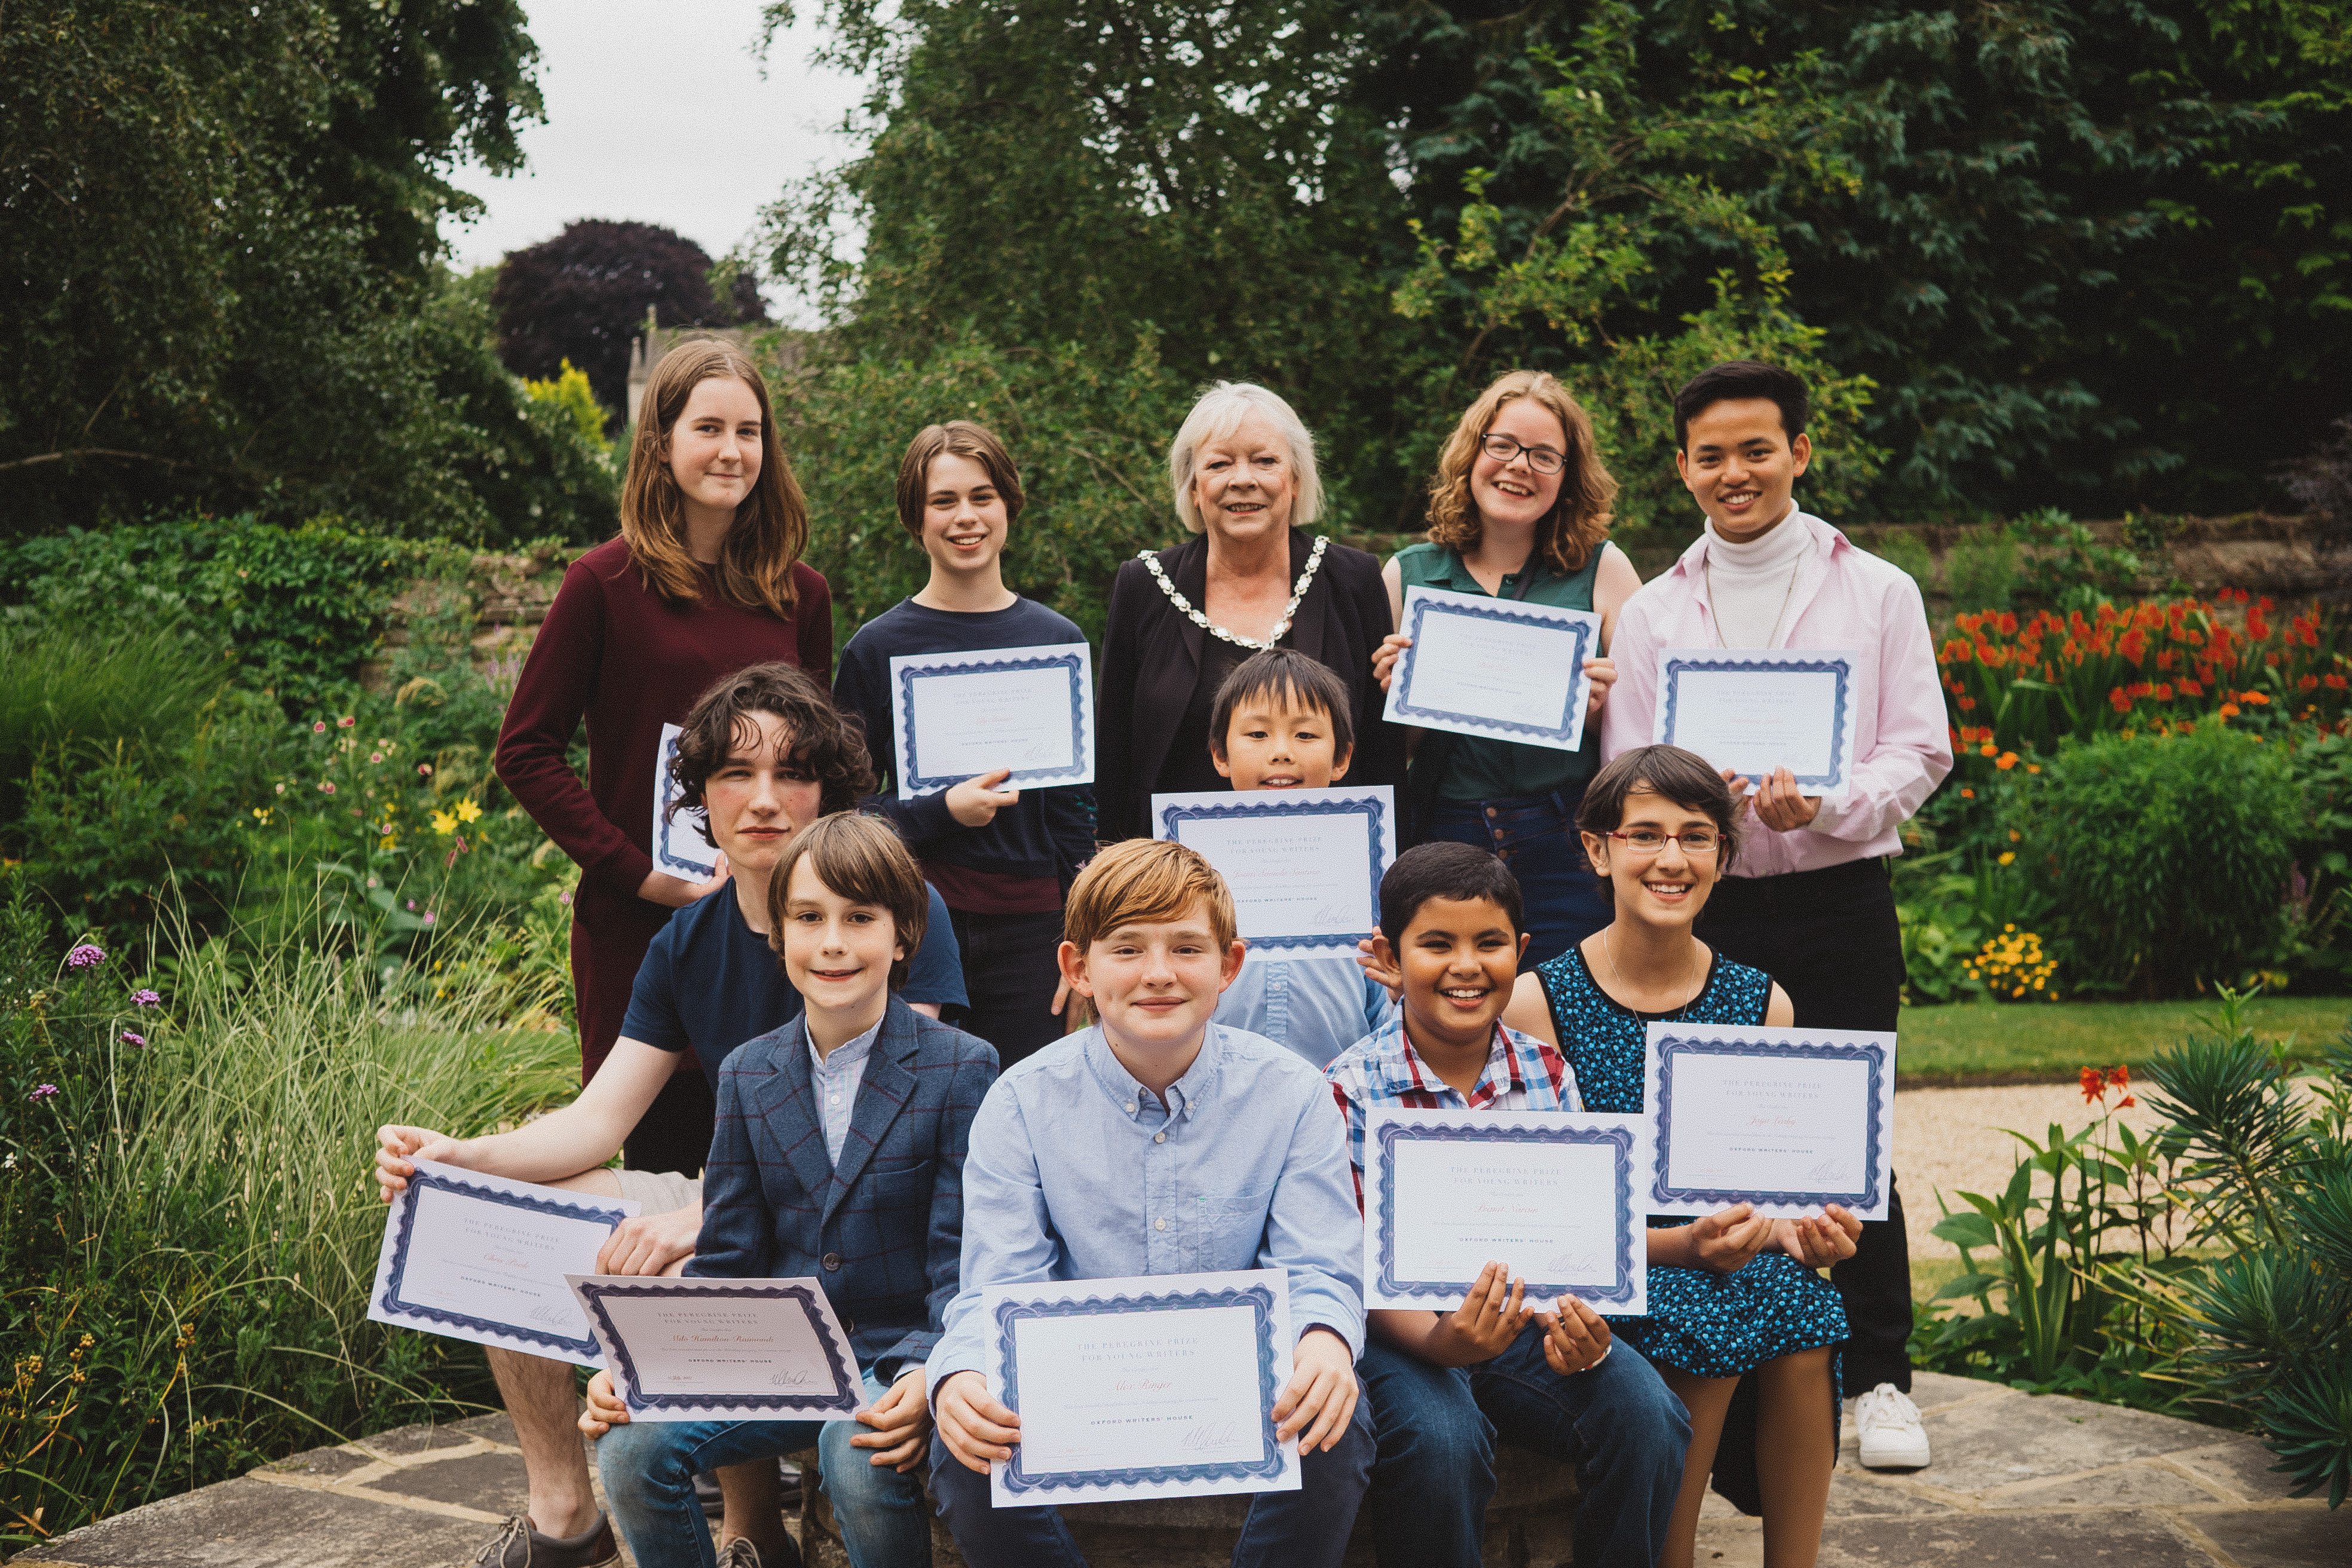 Students fire young Oxfordshire imaginations